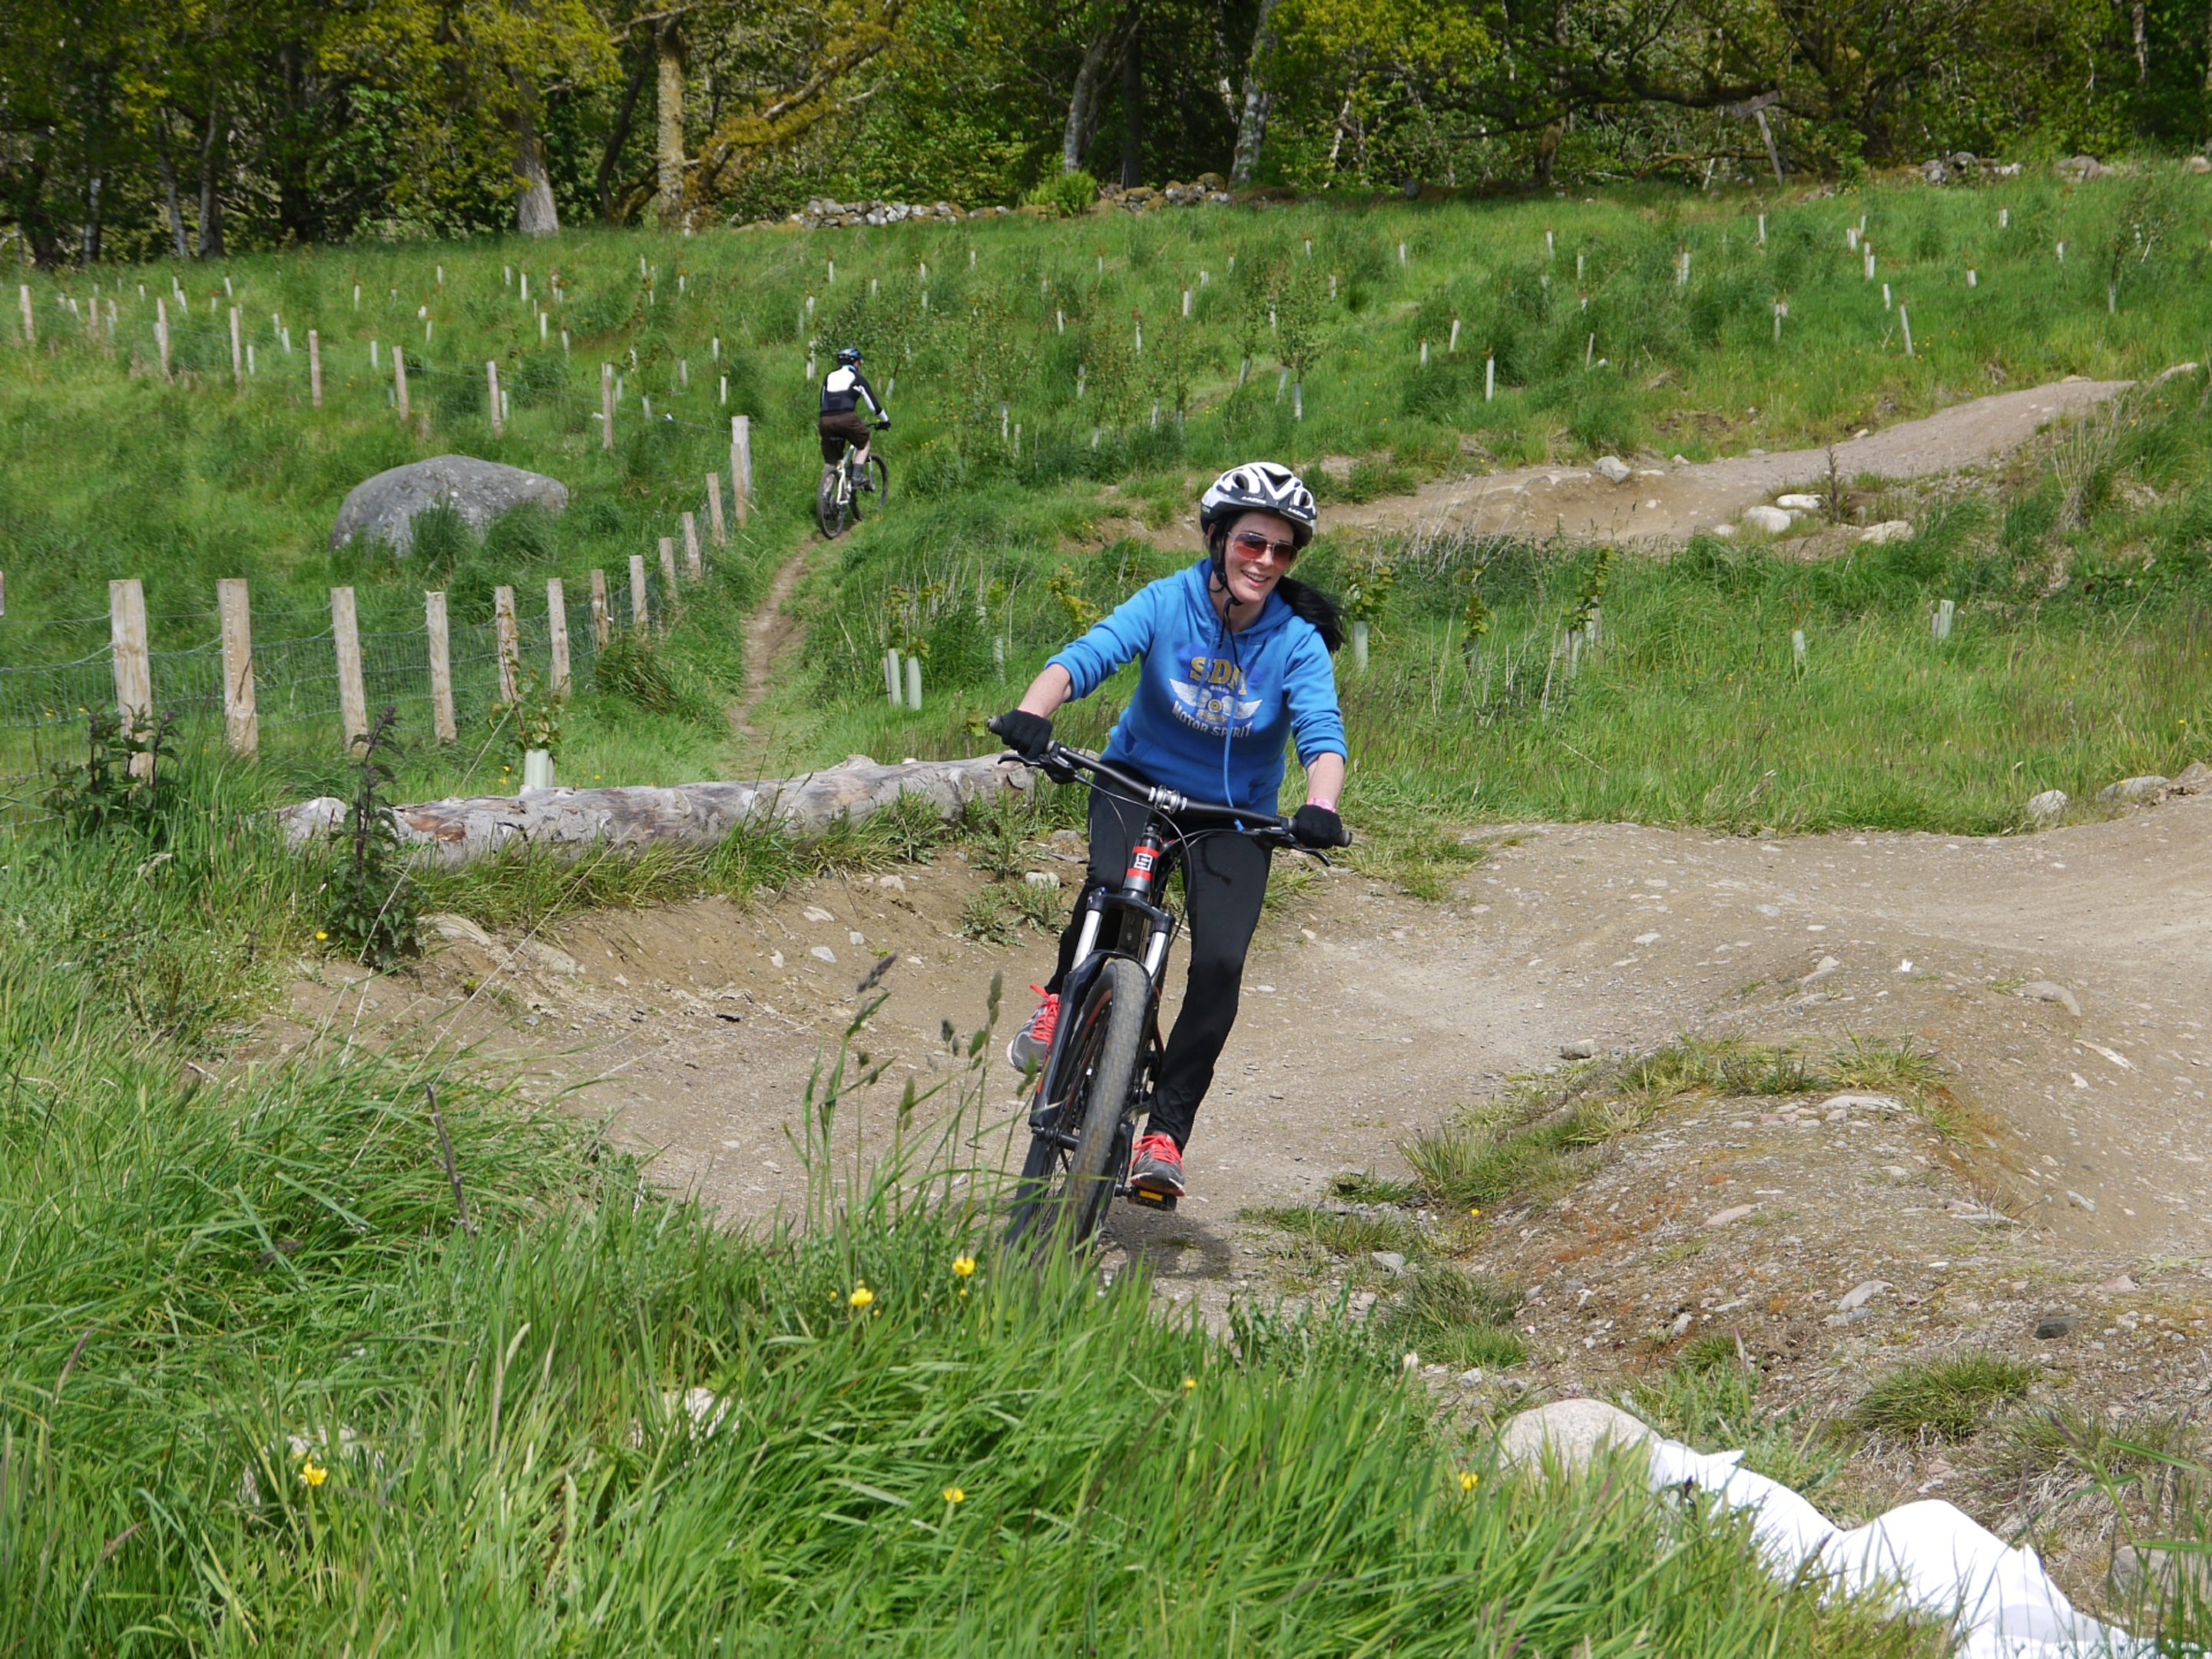 Gayle takes on one of the less challenging trails at Comrie Croft ahead of Cream o' the Croft festival.